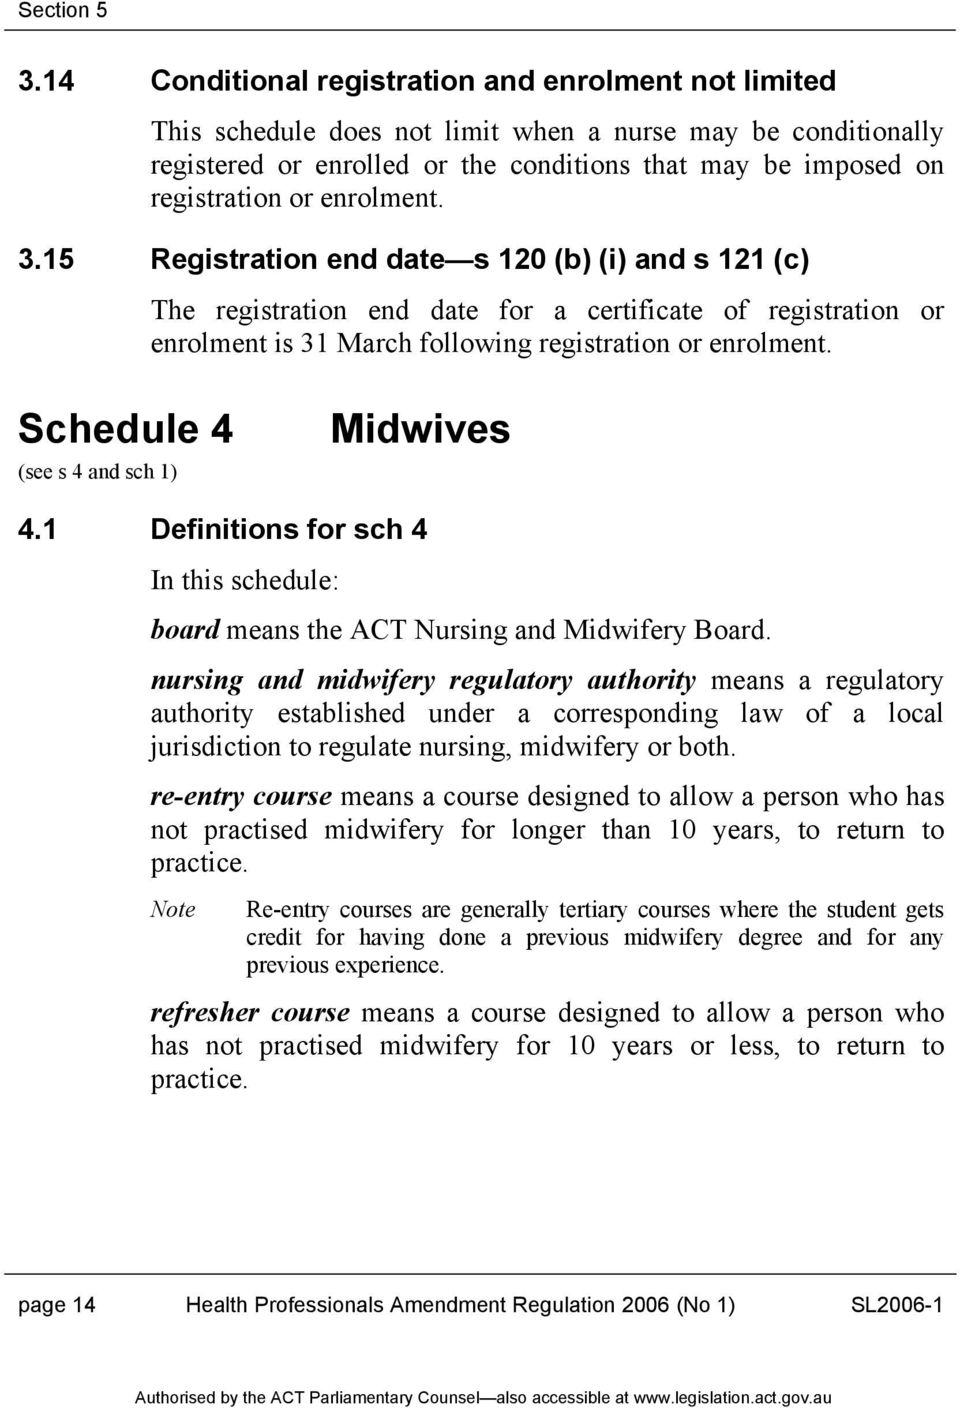 Schedule 4 (see s 4 and sch 1) Midwives 4.1 Definitions for sch 4 In this schedule: board means the ACT Nursing and Midwifery Board.